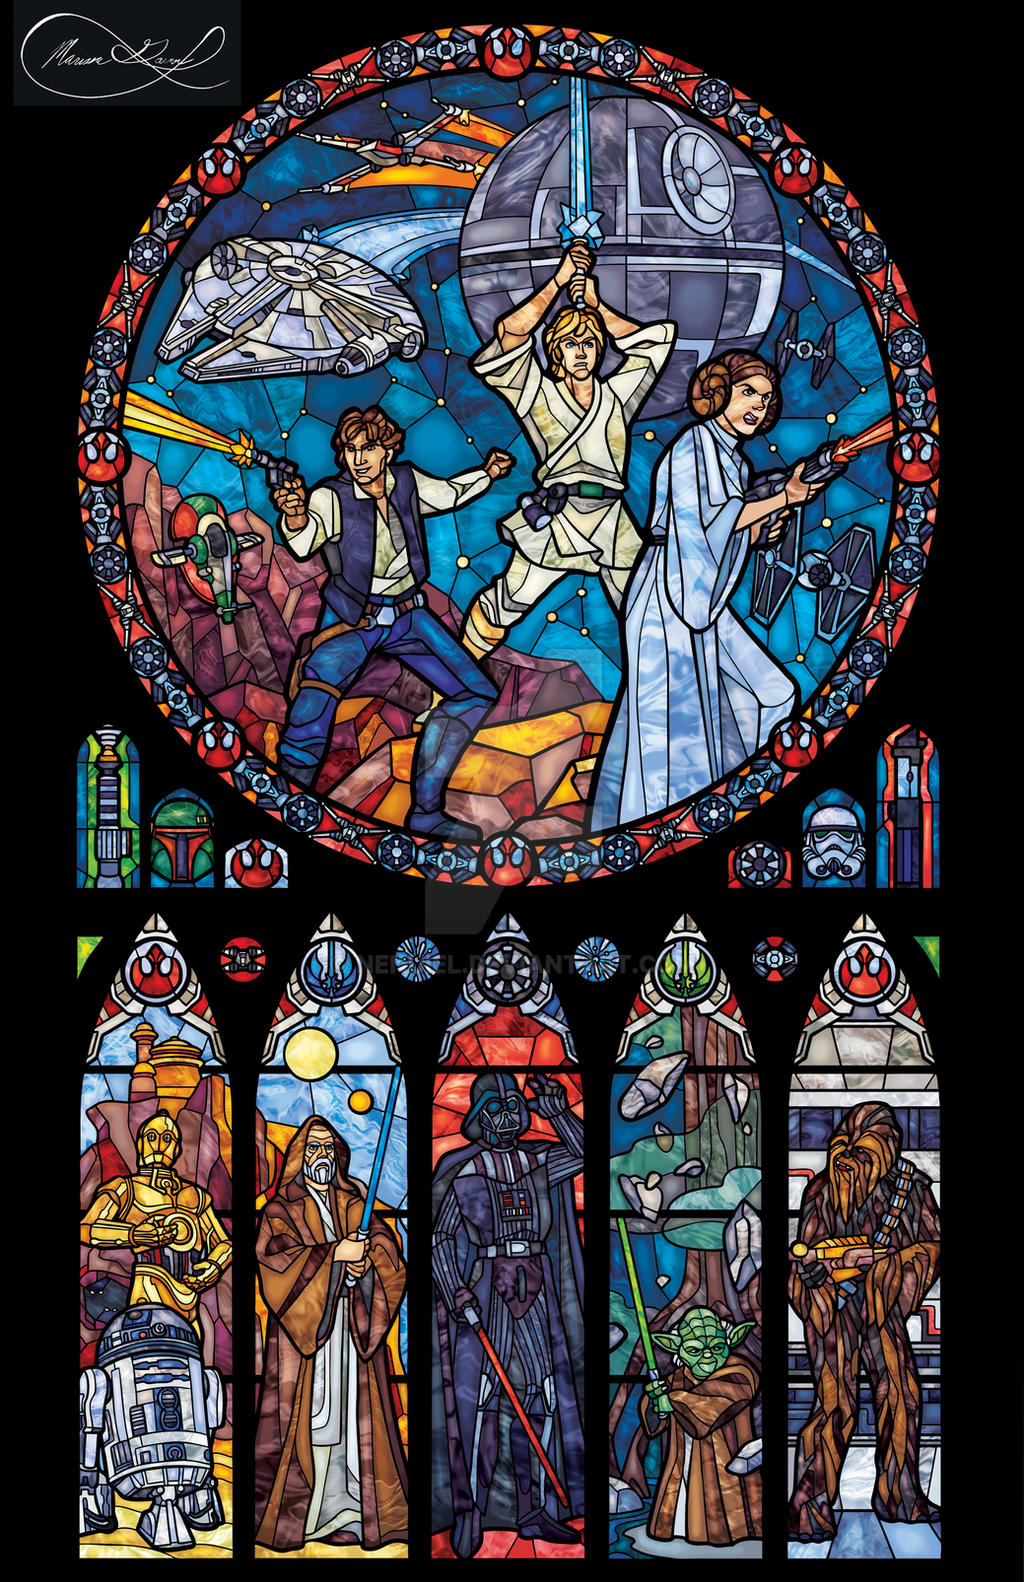 Star wars stained glass classic by nenuiel on deviantart for 5 star windows